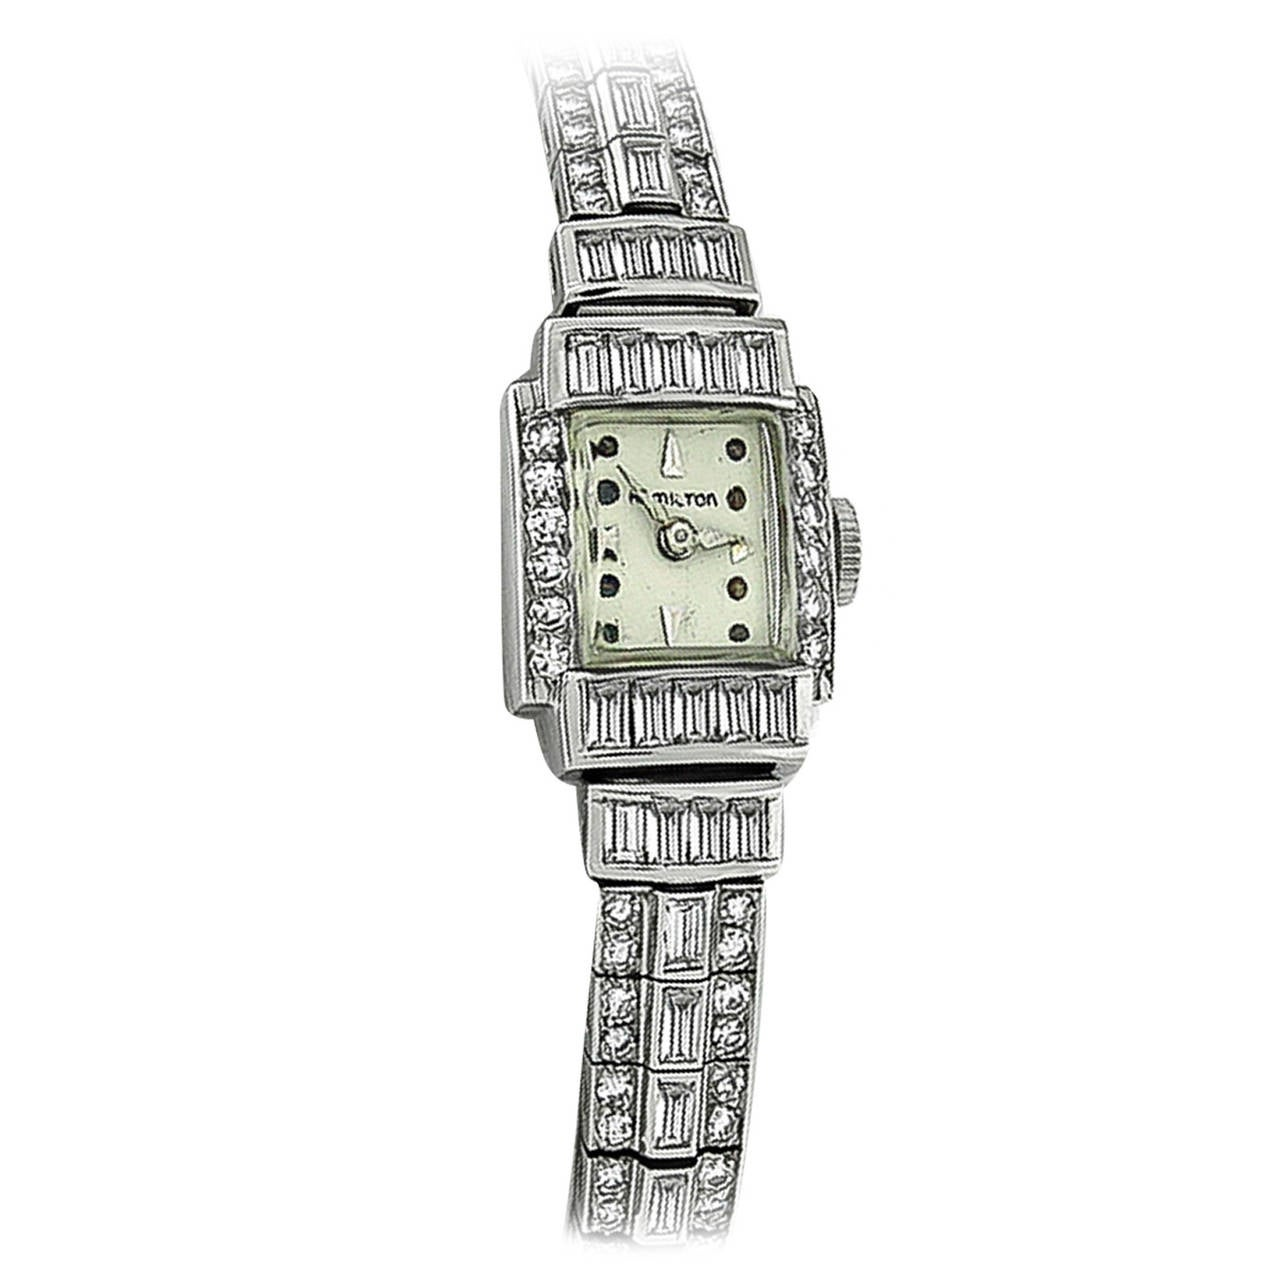 Hamilton Lady's Platinum 5.50 Carat Diamond Bracelet Wristwatch 1